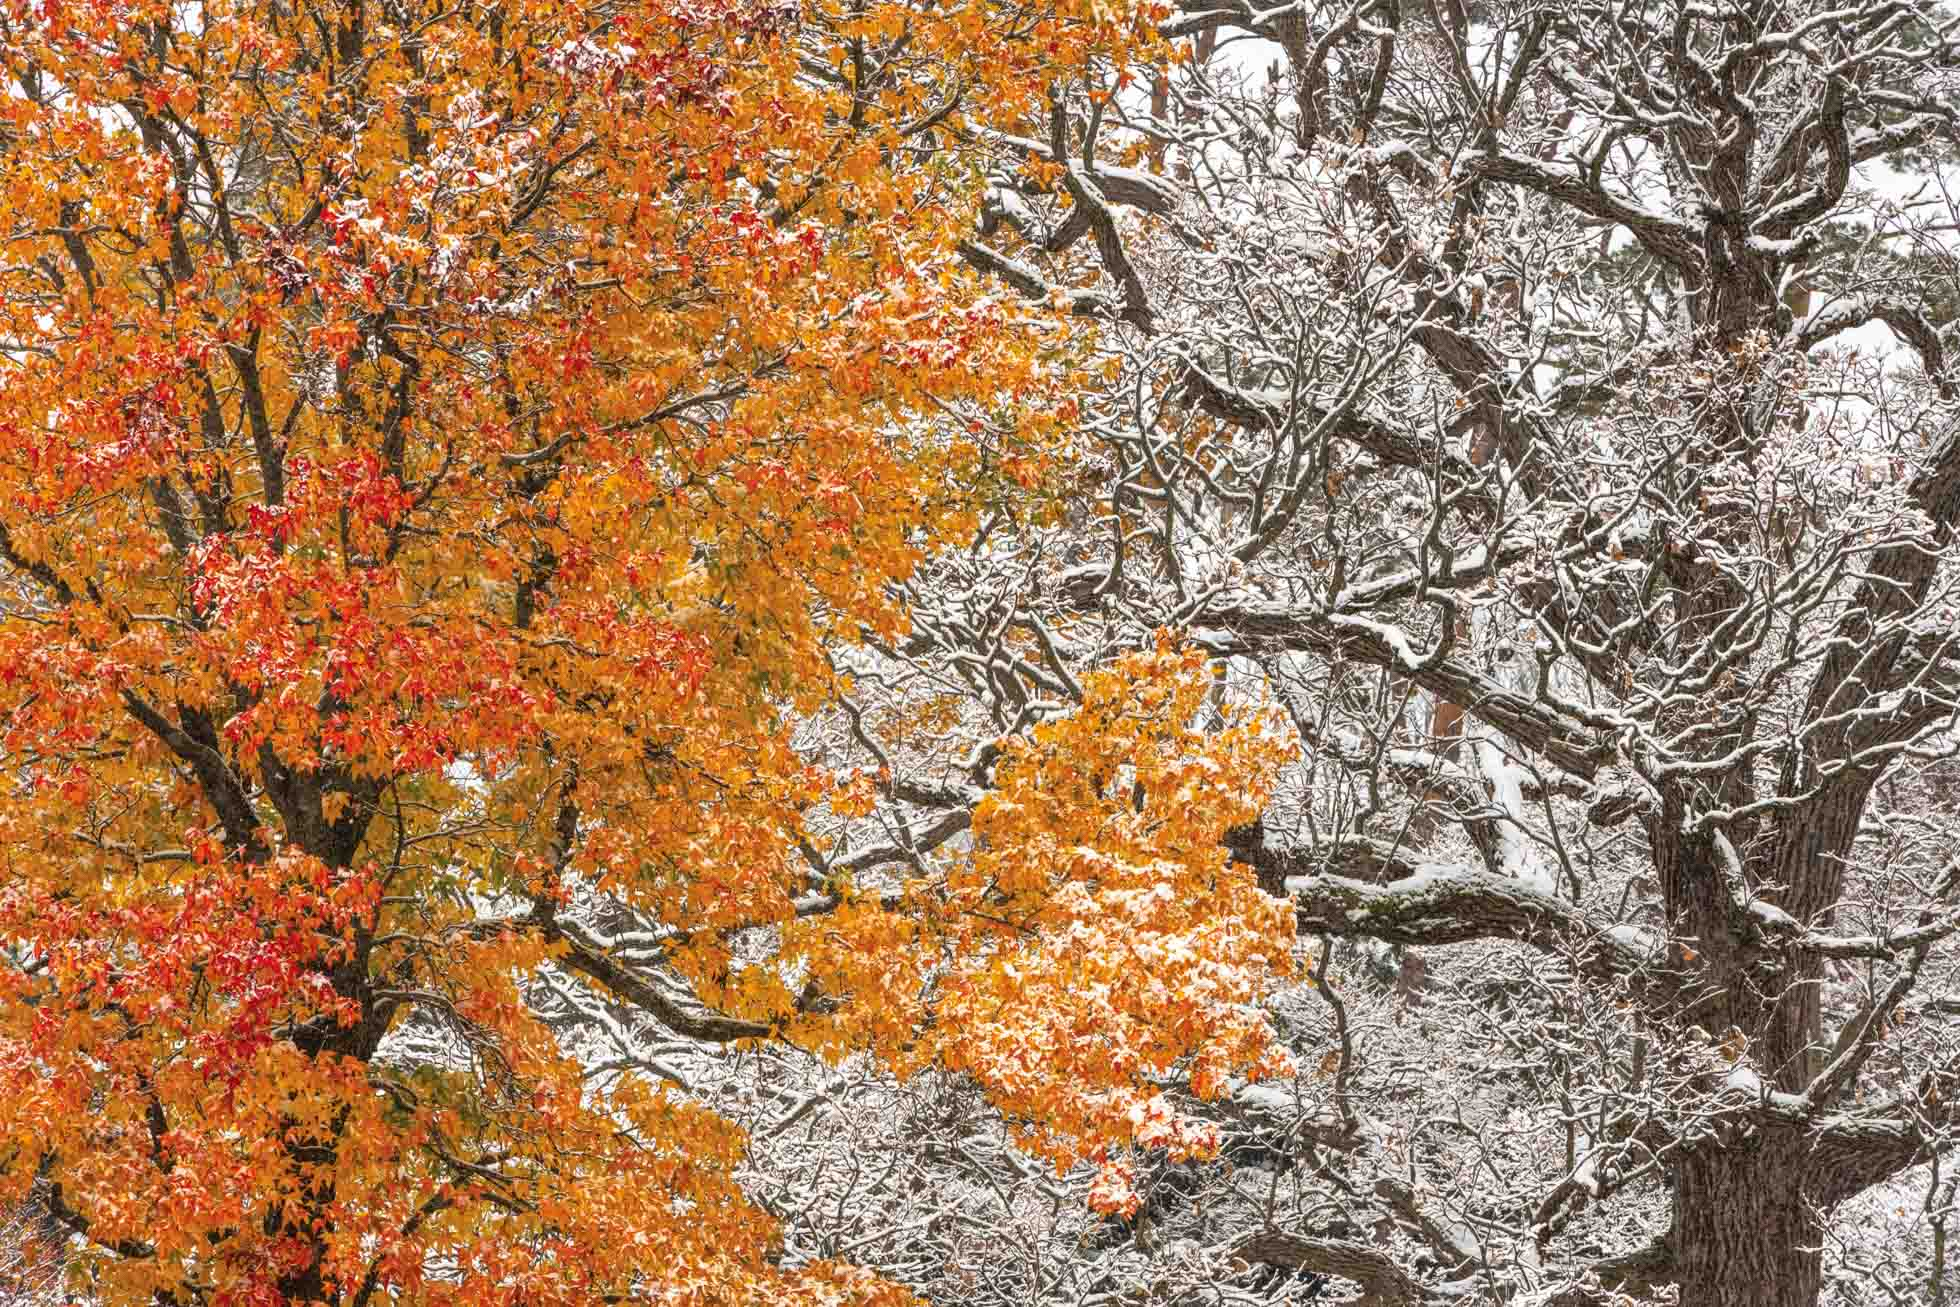 200mm  The week after Halloween, we got our first big snow. It just so happened I had just been out to the Arboretum the prior week photographing peak fall color. So after the snowfall, I drove through and spotted this incredible scene of seasons colliding. 200mm with my 70-200mm lens allowed me to highlight the detail of these two trees next to each other by filling the frame with the contrast of fall color and snowy branches.